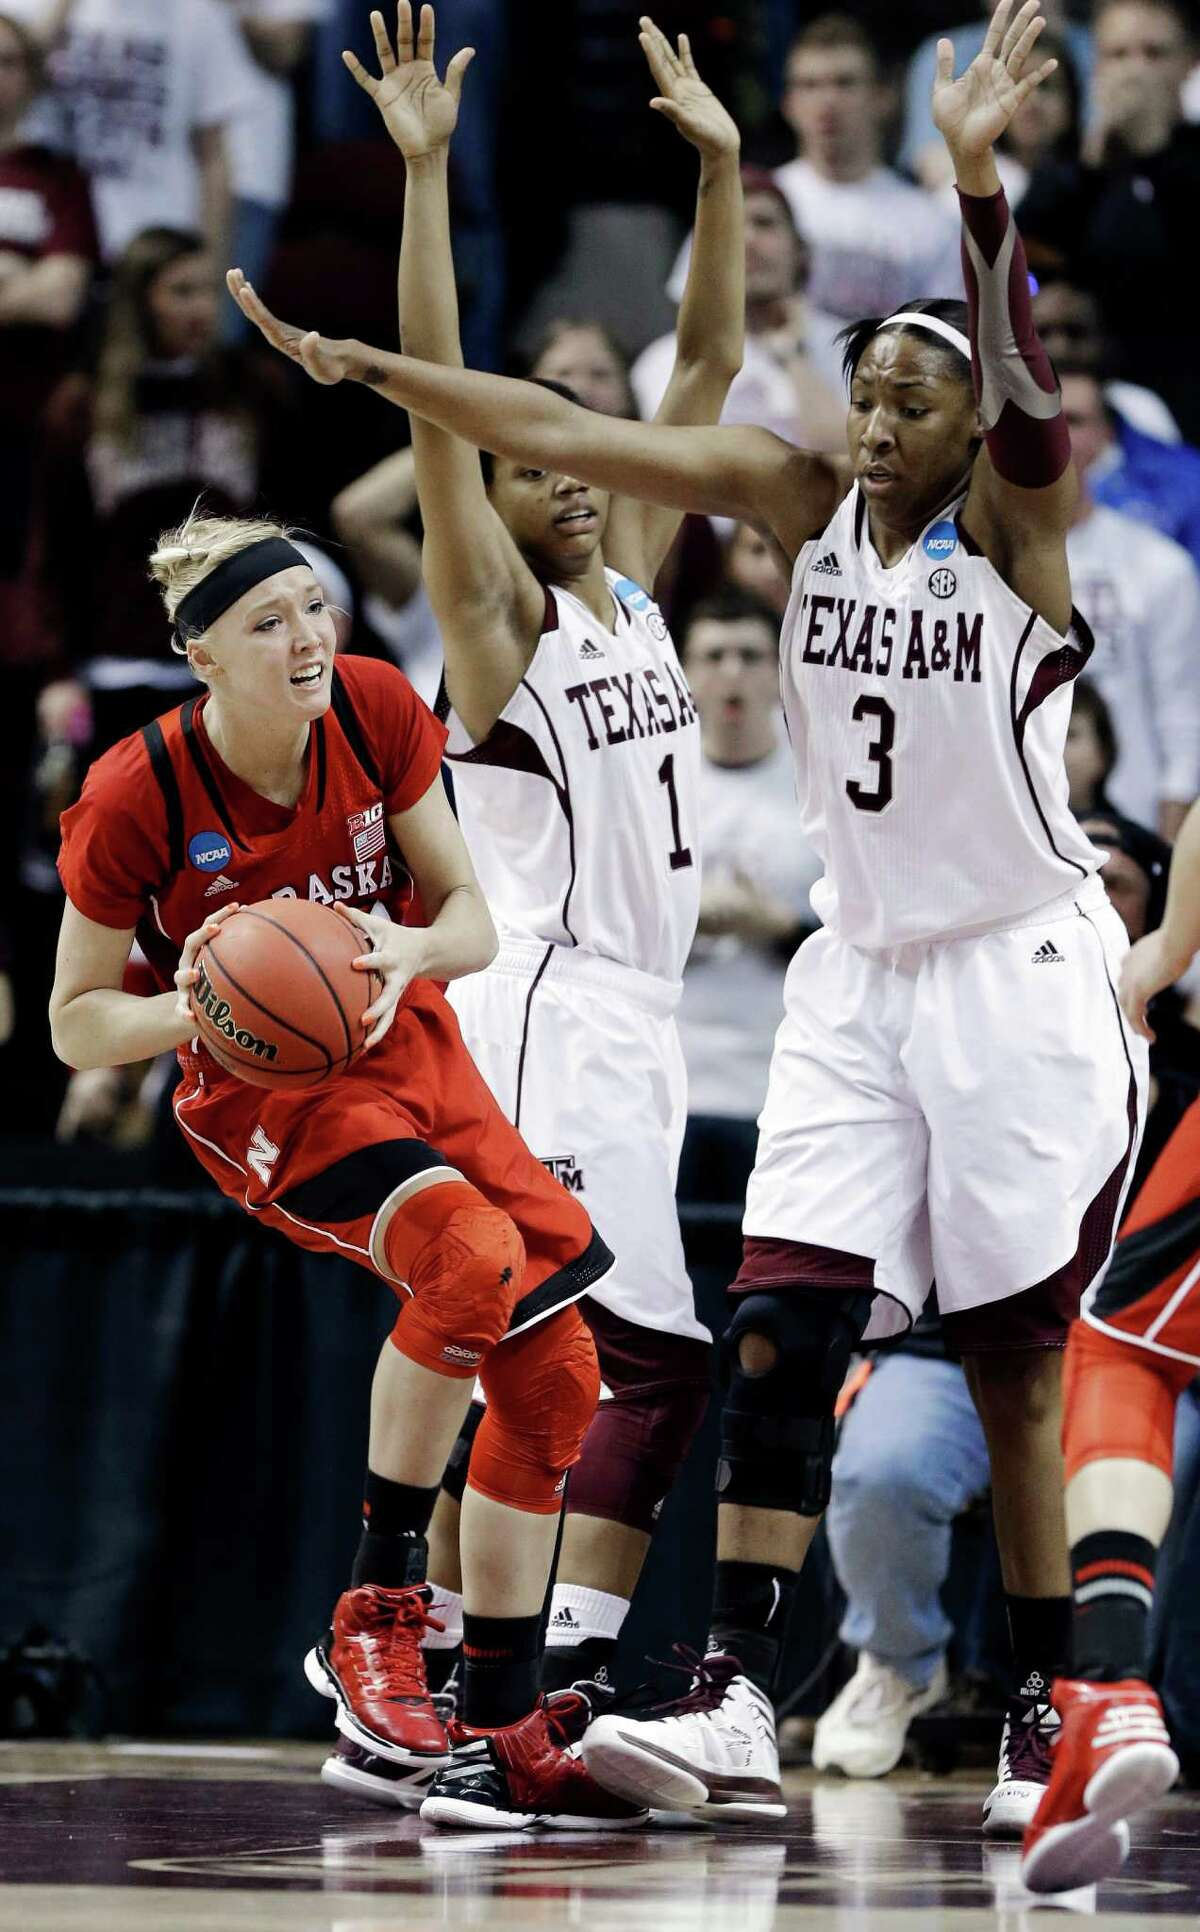 Nebraska's Emily Cady, left, is pressured by Texas A&M's Courtney Williams (1) and Kelsey Bone (3) during a second-round game in the NCAA women's college basketball tournament in College Station, Texas, Monday, March 25, 2013.